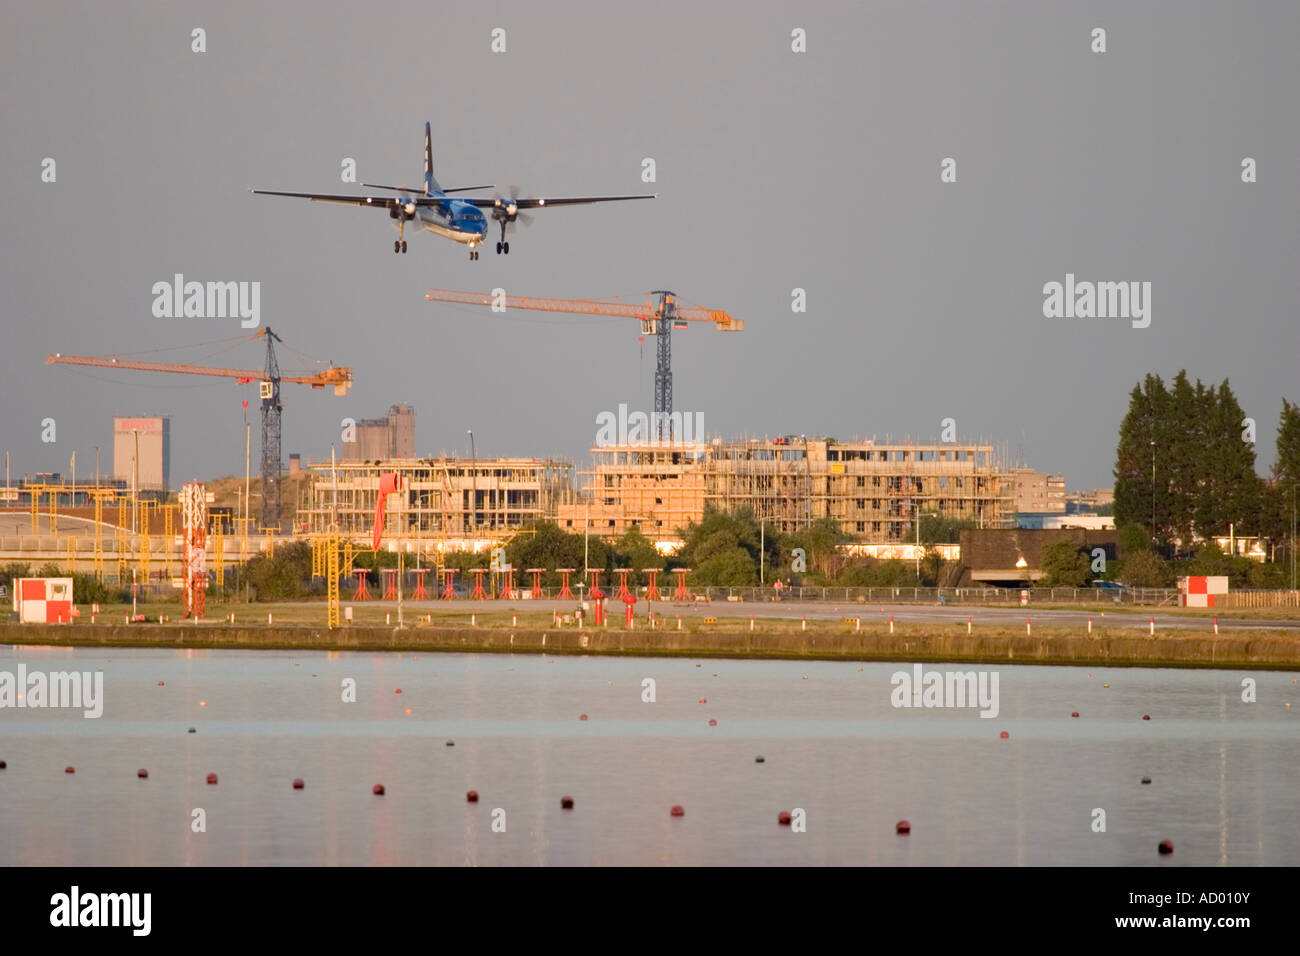 Turboprop-powered airliner on steep approach at London City Airport England UK - Stock Image